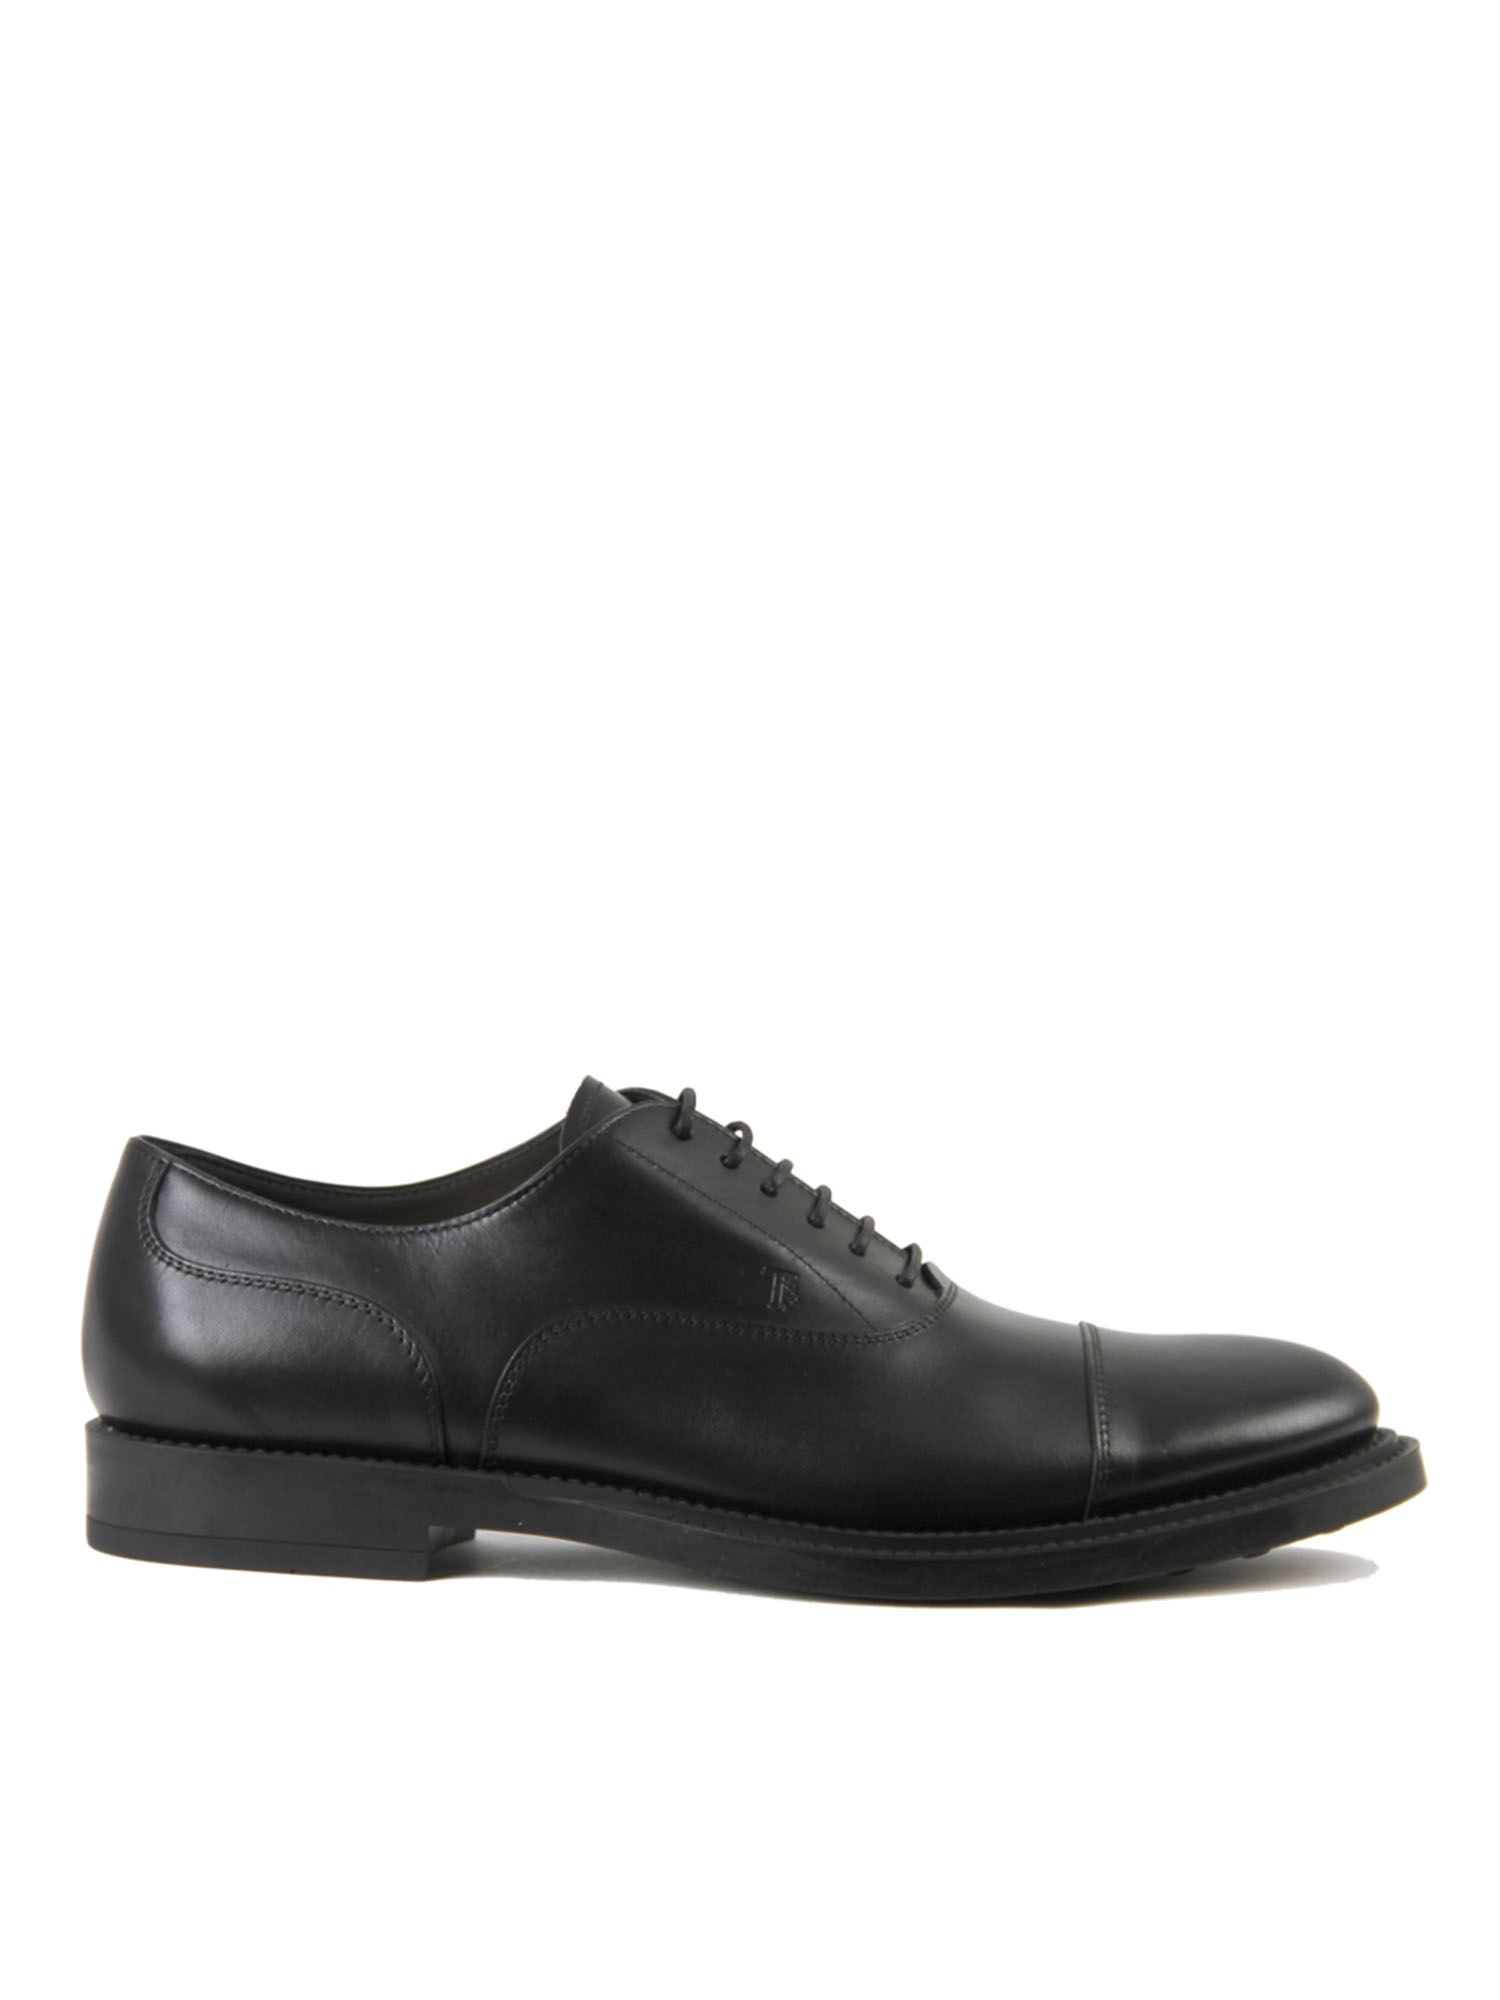 TOD'S OXFORD FEATURING LOGO